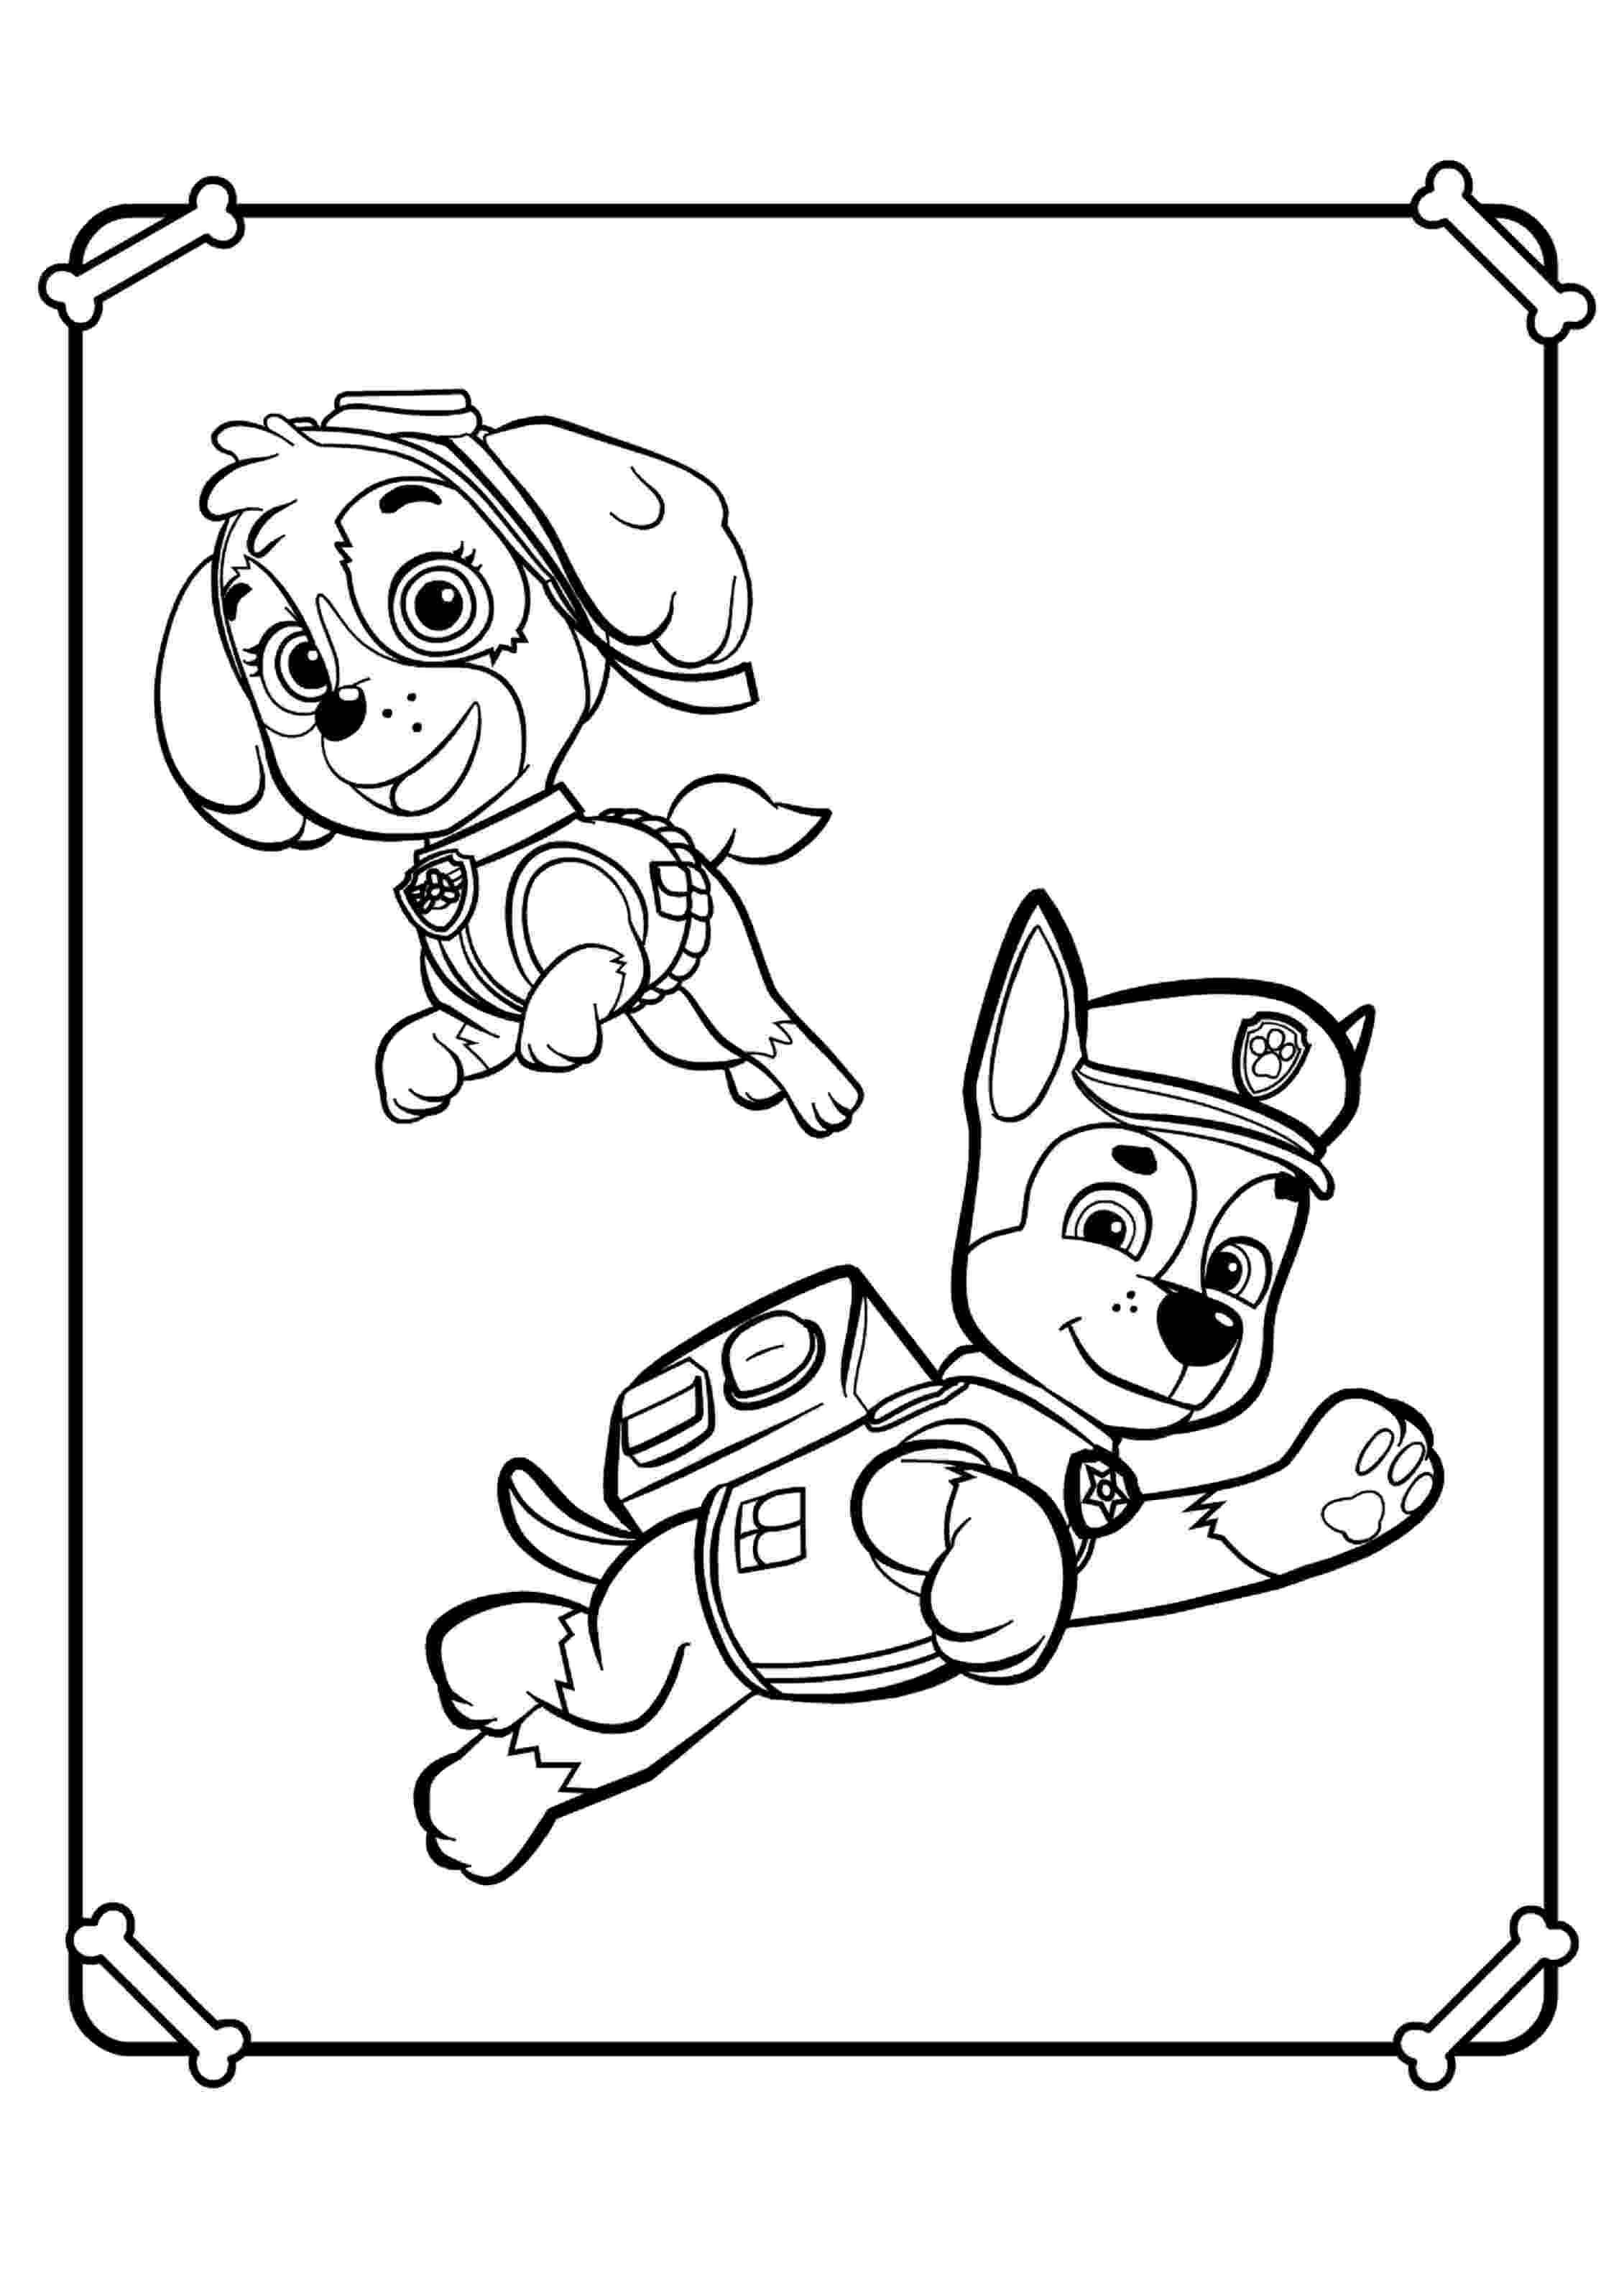 paw patrol coloring pages paw patrol coloring pages printable 25 print color craft paw coloring patrol pages